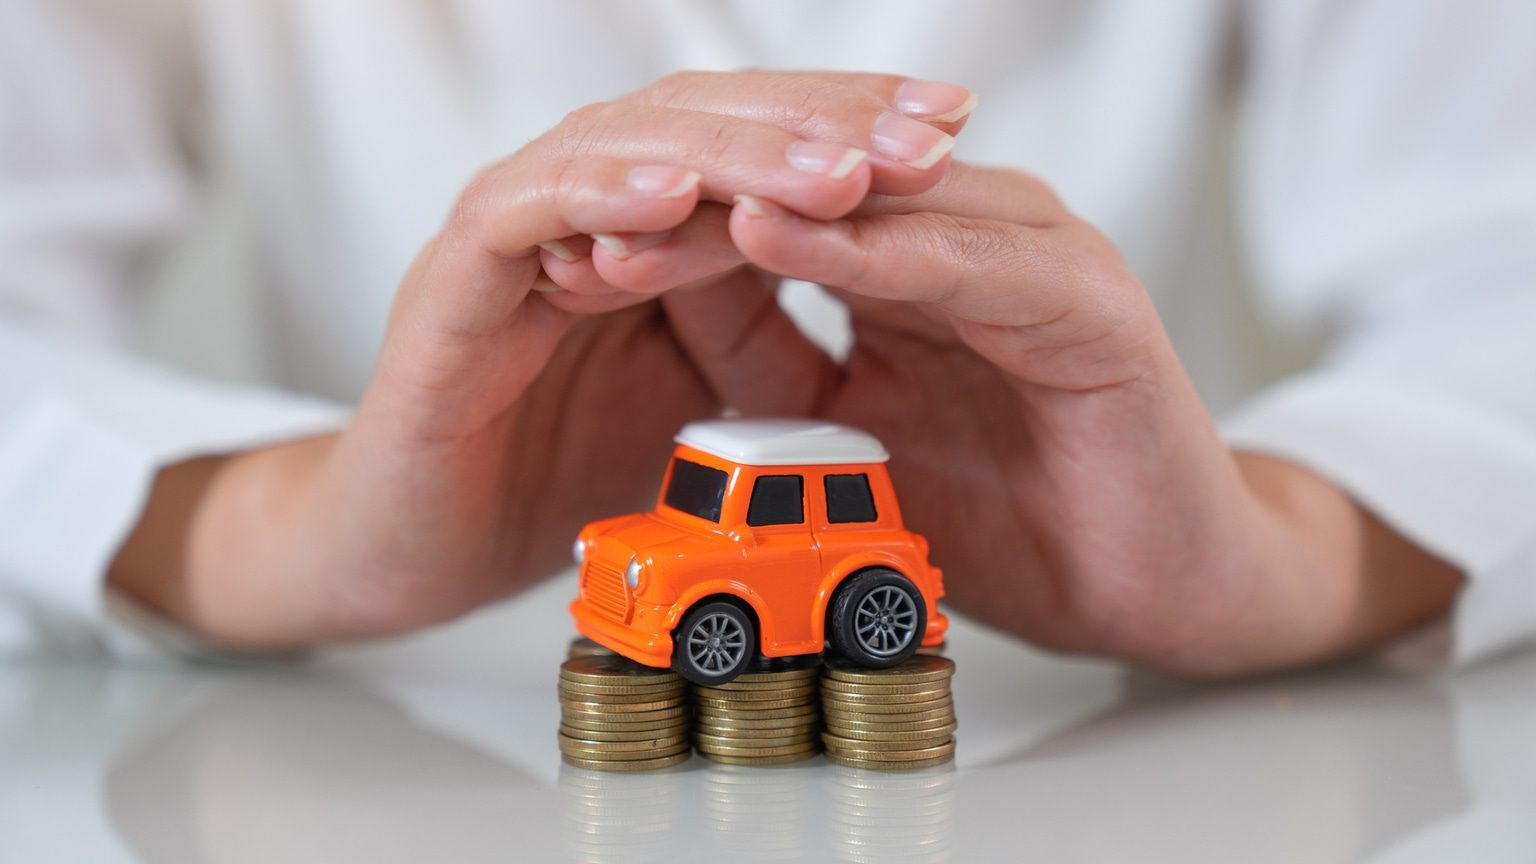 Hands Covering Toy Car And Coins